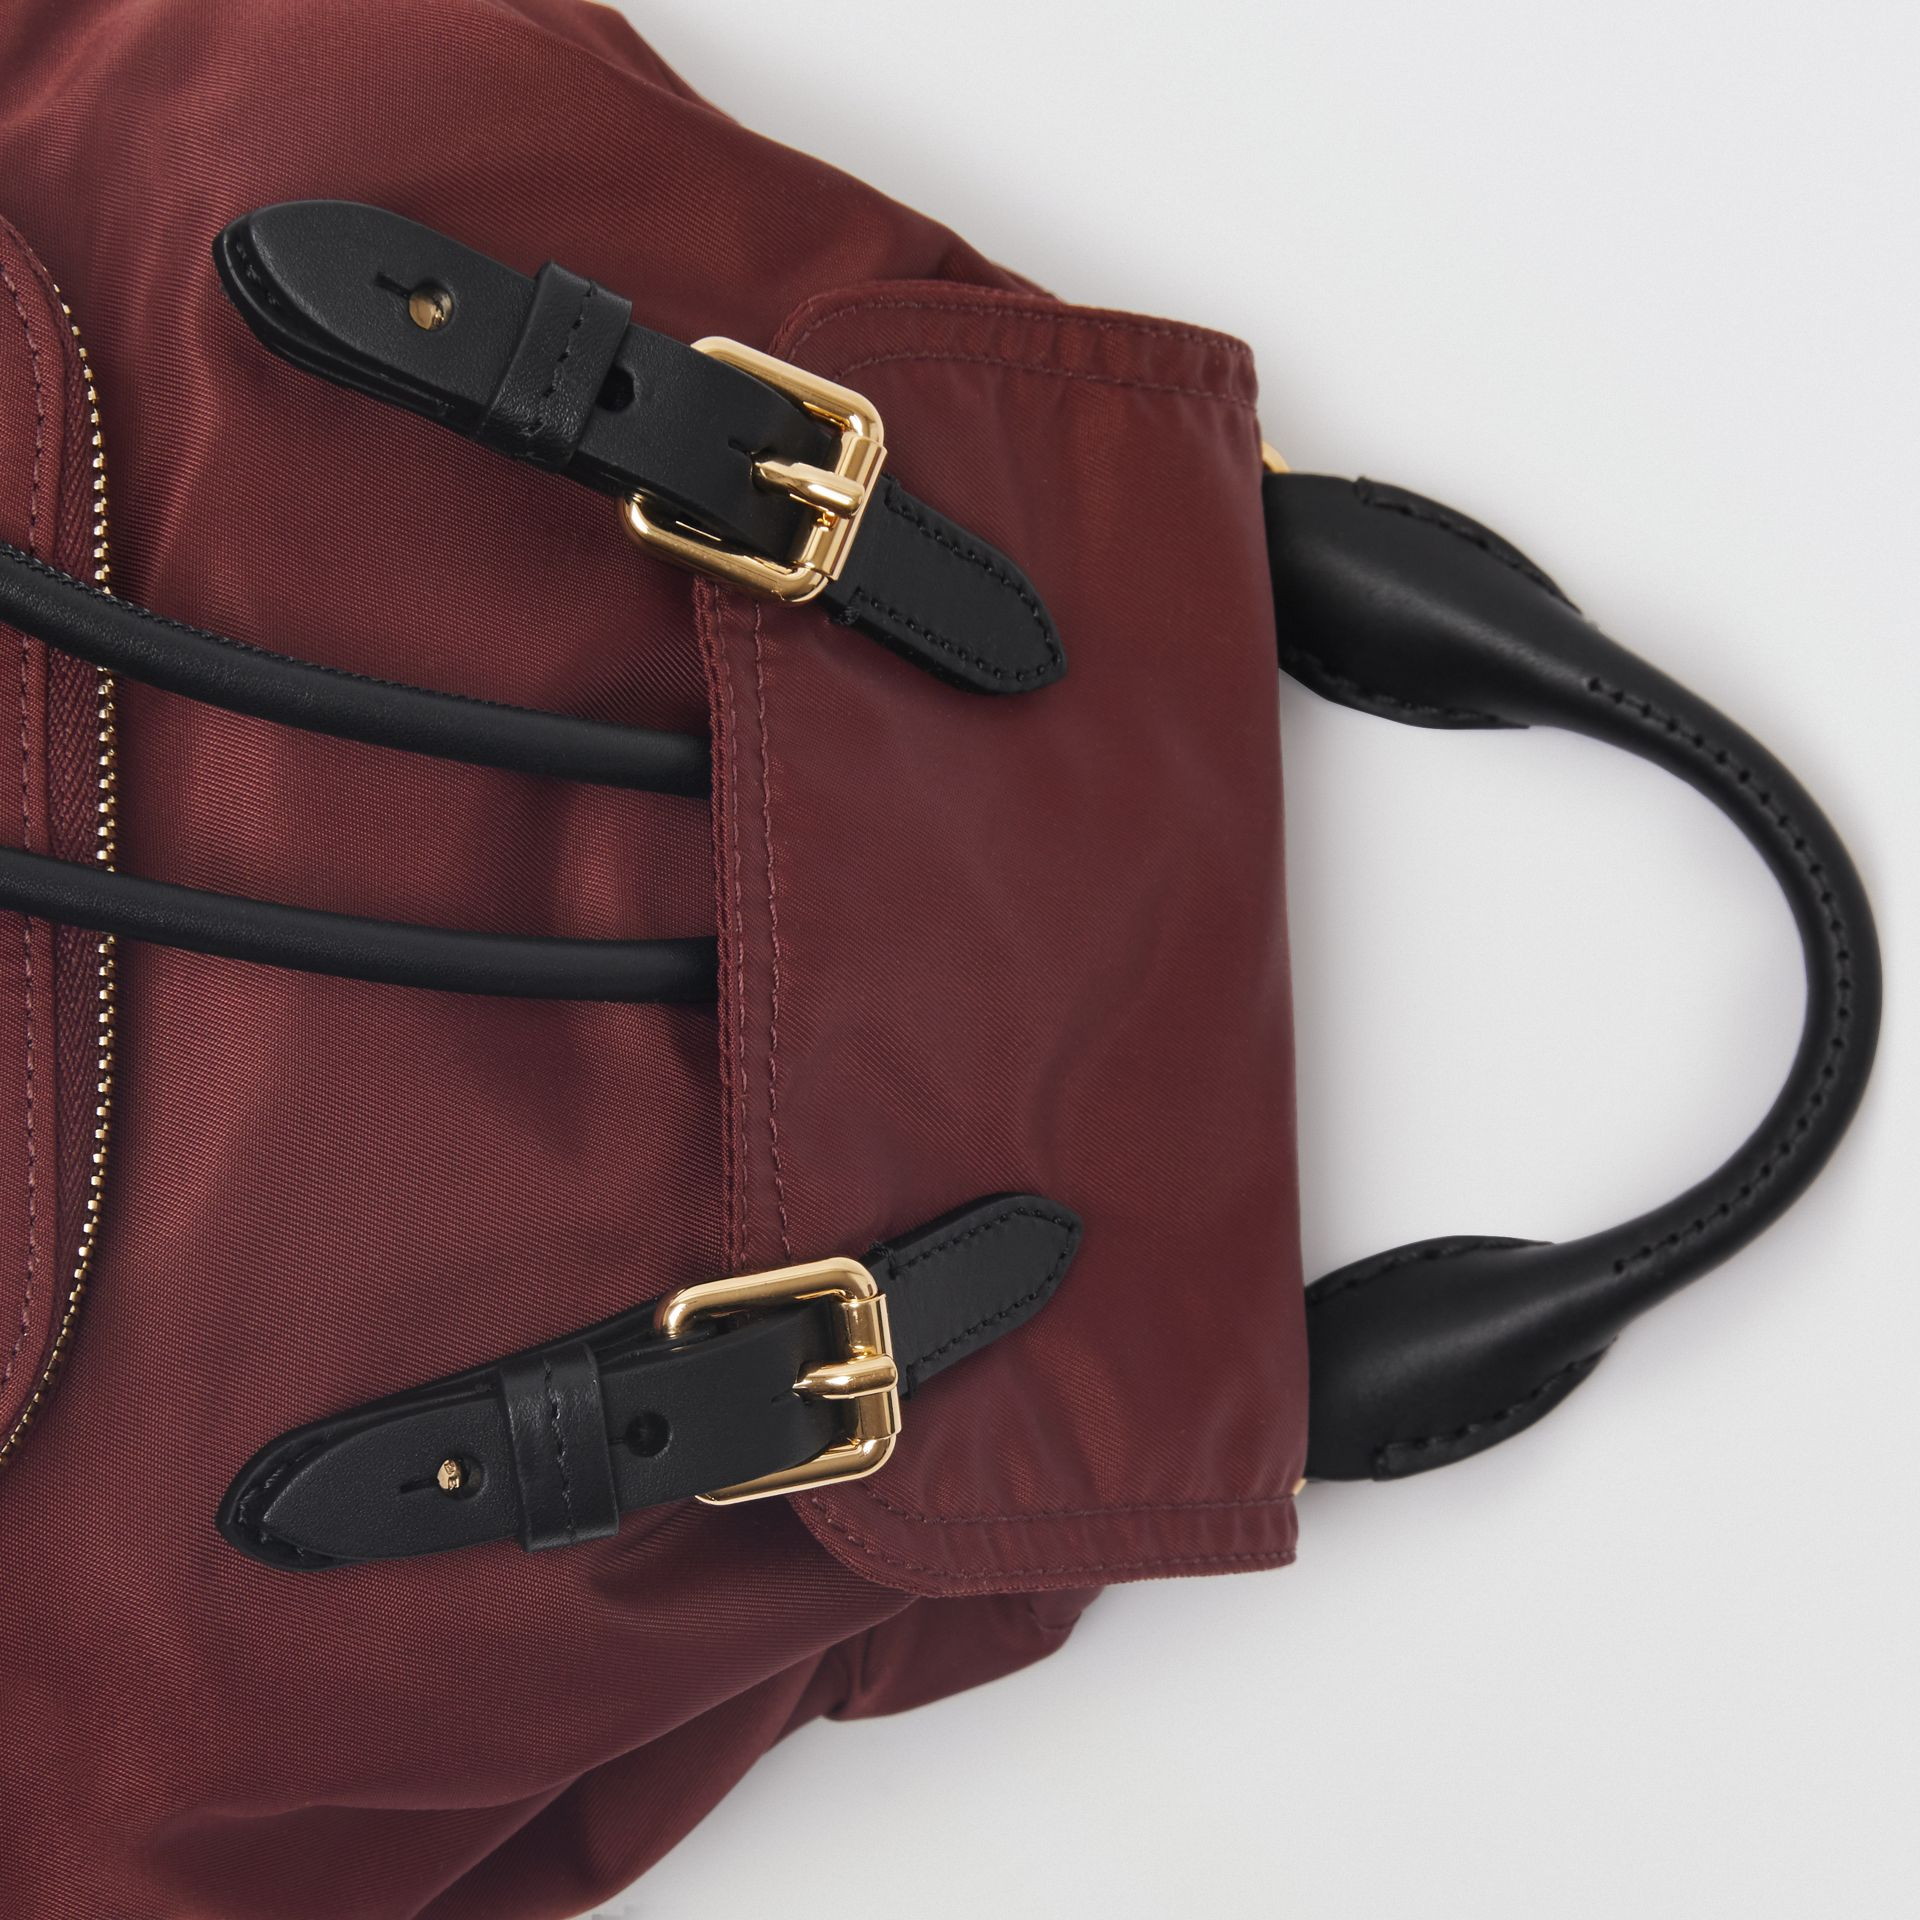 The Small Crossbody Rucksack in Nylon in Burgundy Red - Women | Burberry - gallery image 1